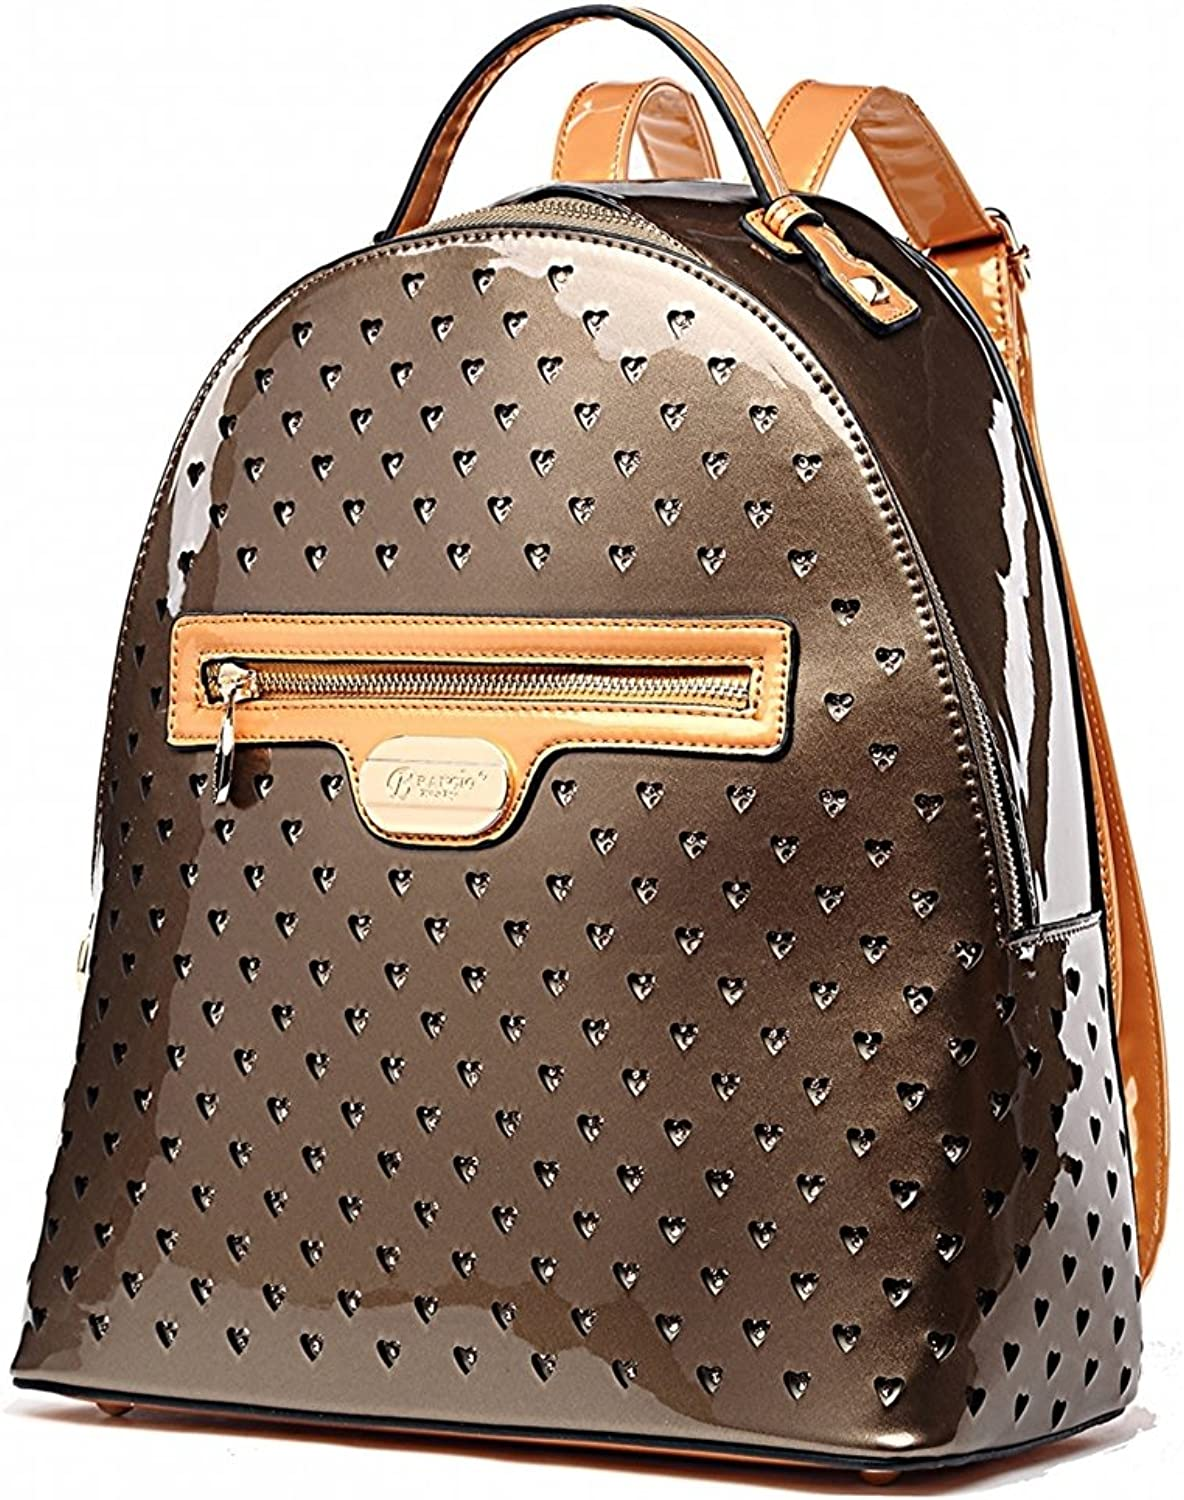 VERONA H & L New Women's Shiny Twinkle Star Vegan Leather Backpack